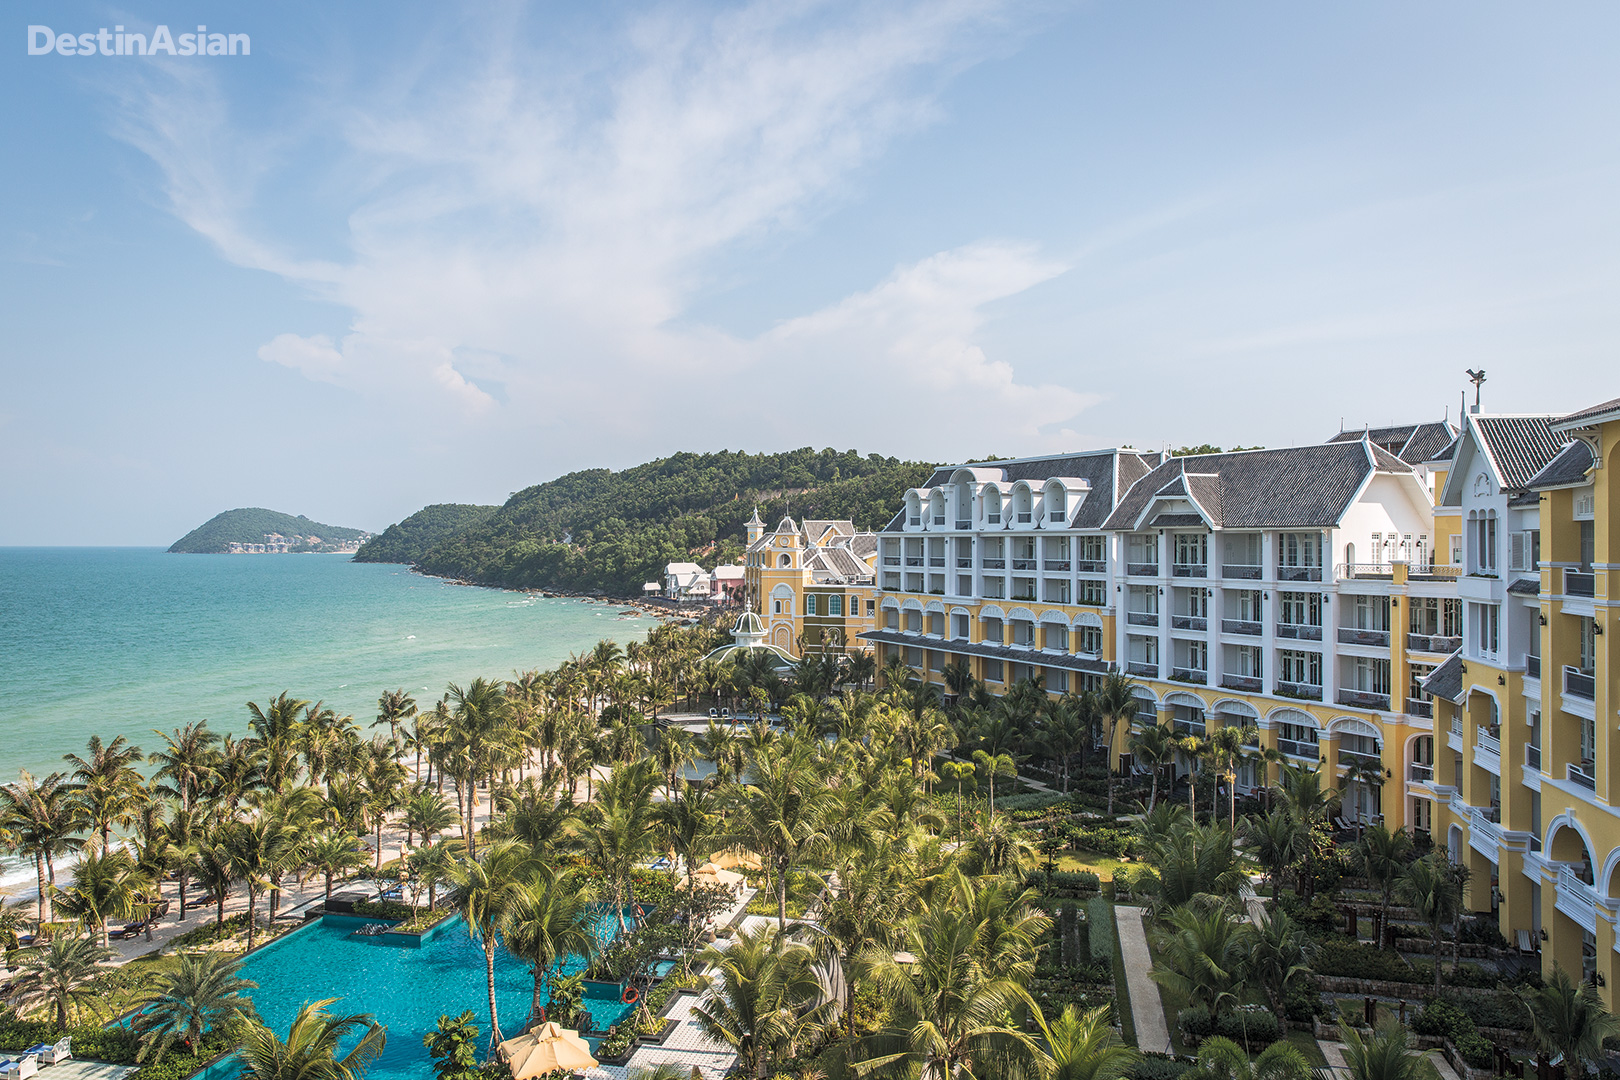 The view from a penthouse suite at the JW Marriott Phu Quoc Emerald Bay.